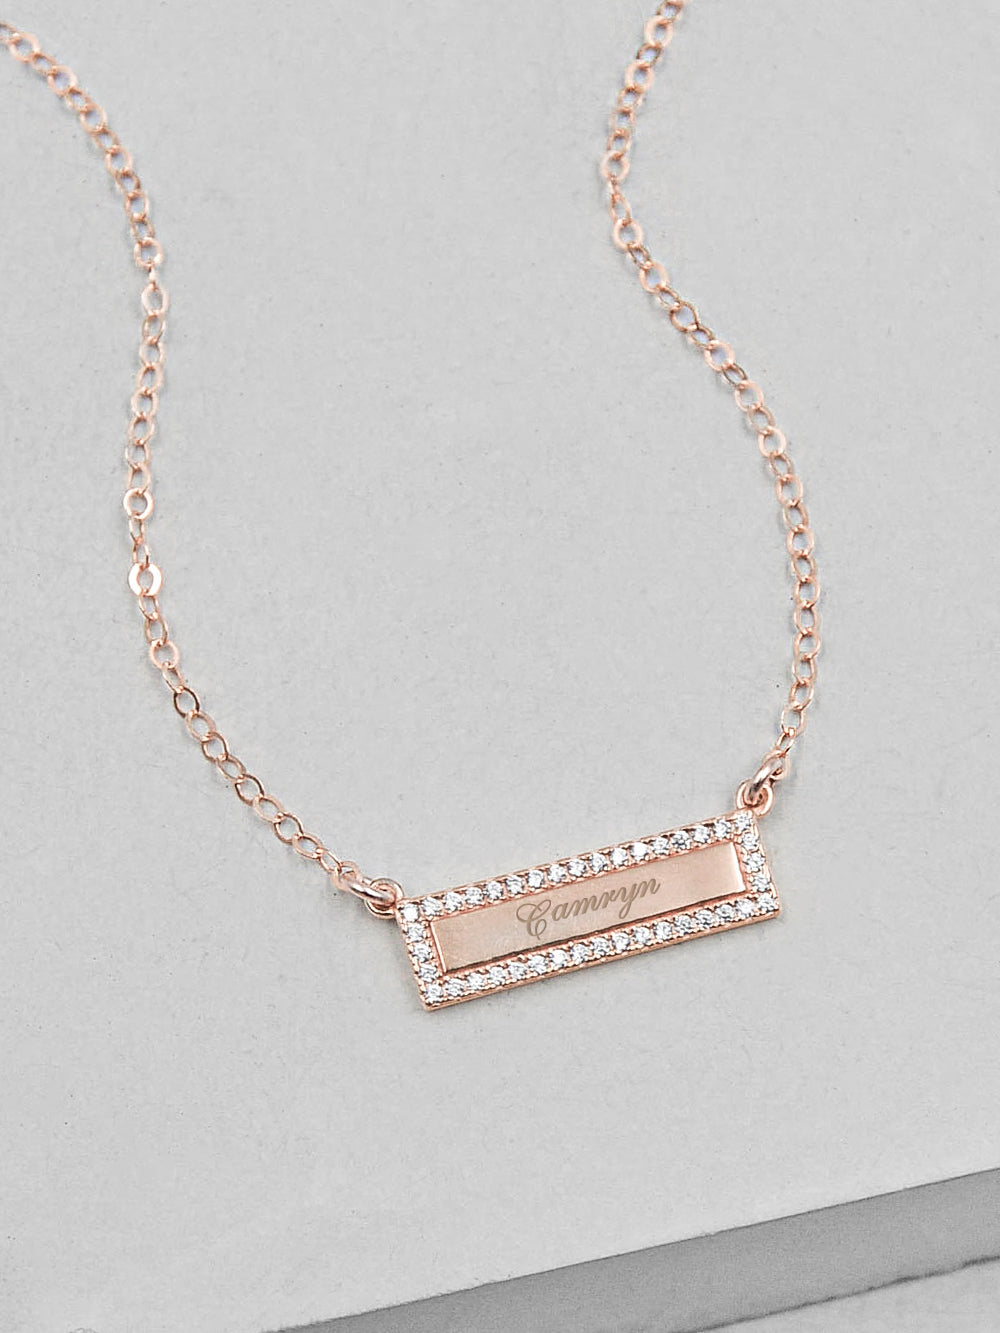 Engraved Sparkle Bar Rose Gold Necklace by The Faint Hearted Jewelry